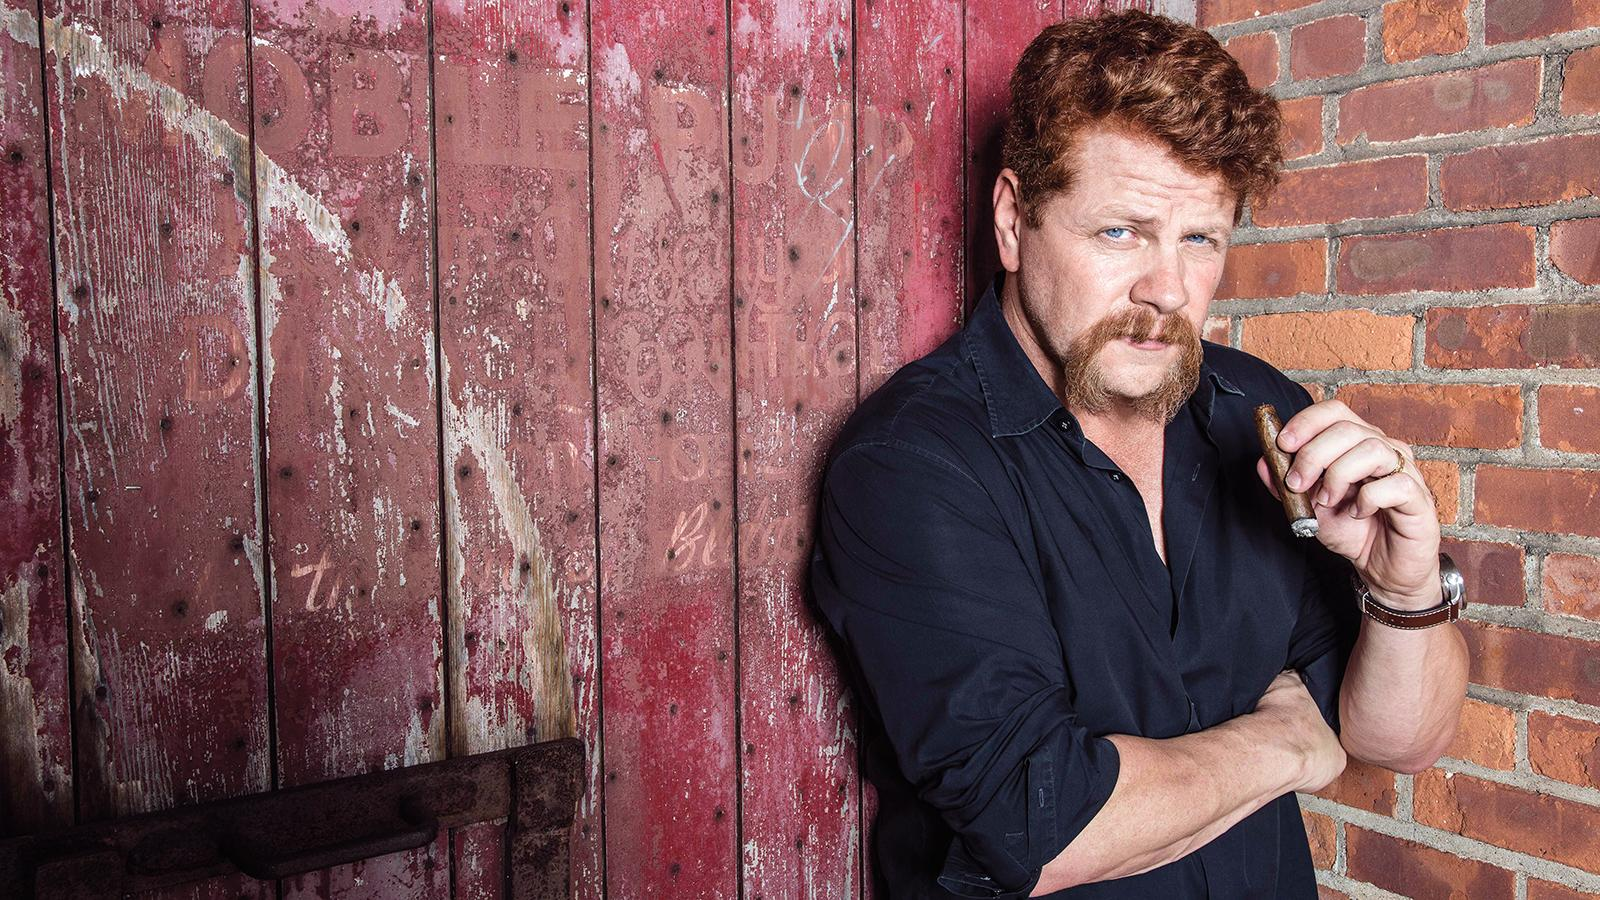 Cigar lover Michael Cudlitz played Abraham Ford on AMC's The Walking Dead.